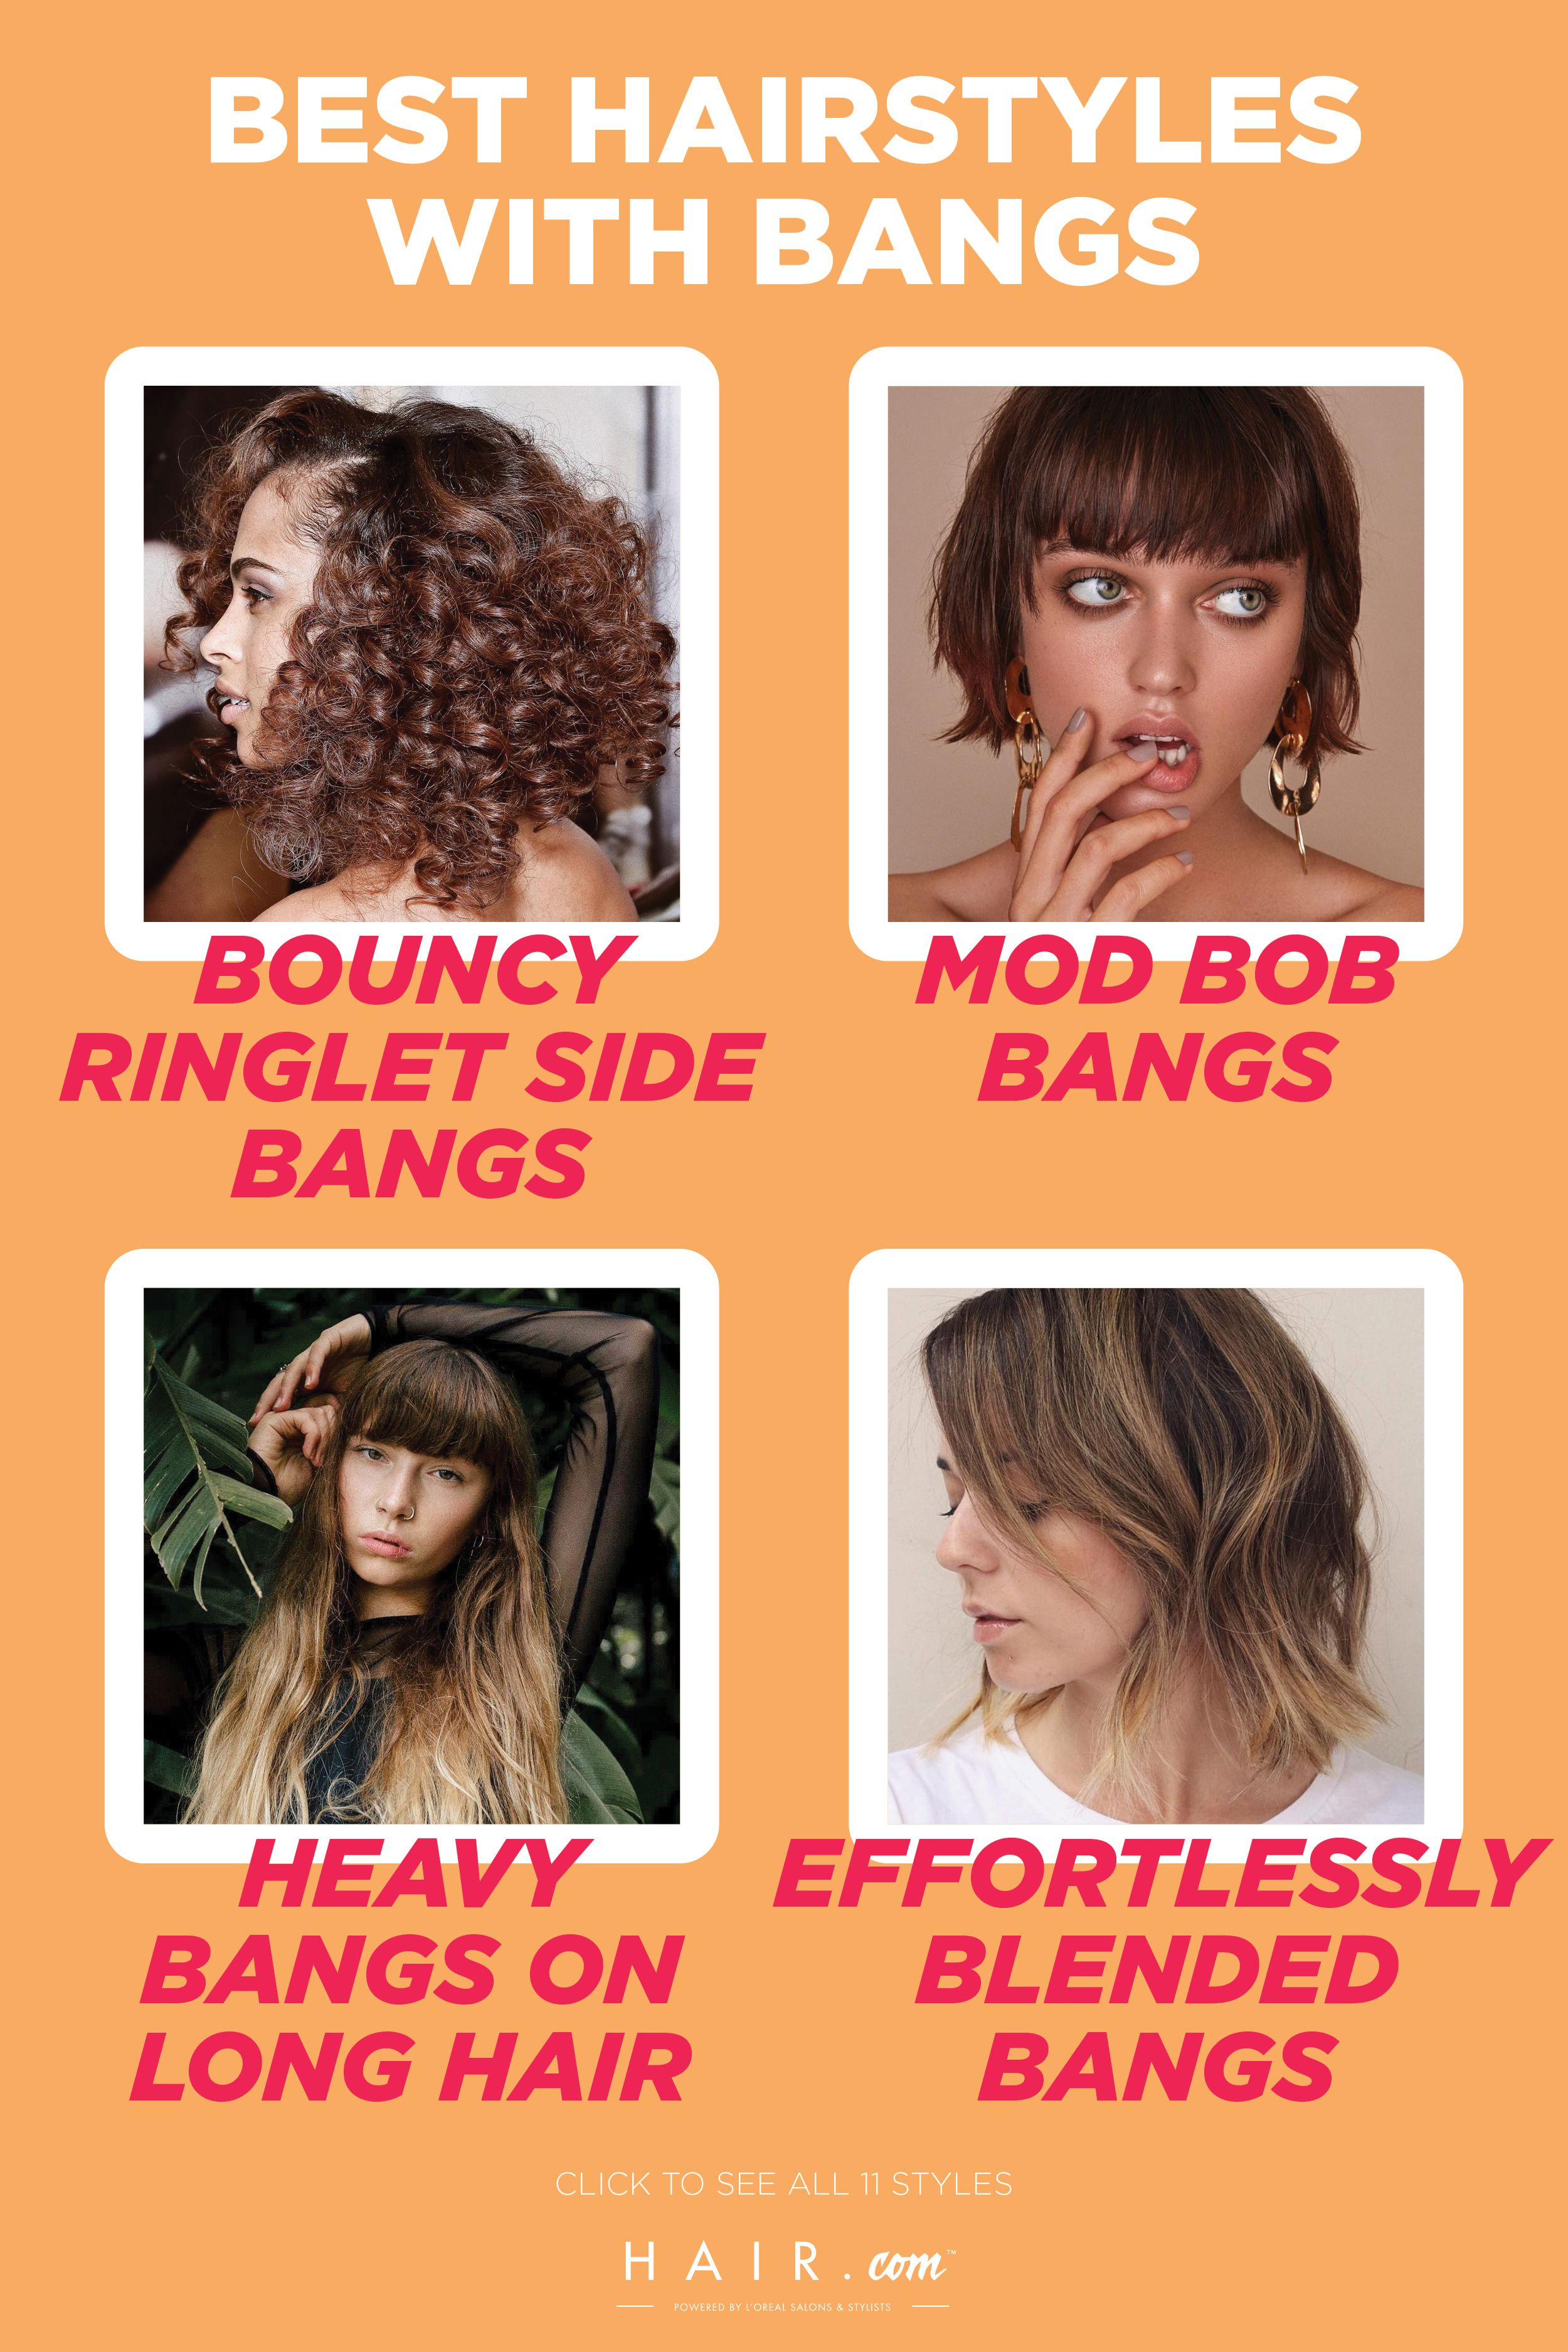 While Bangs Used To Be A Hotly Debated Topic Styling Your Fringe Has Now Become The Hottest Trend In The Hai Cool Hairstyles Hairstyles With Bangs Hair Styles